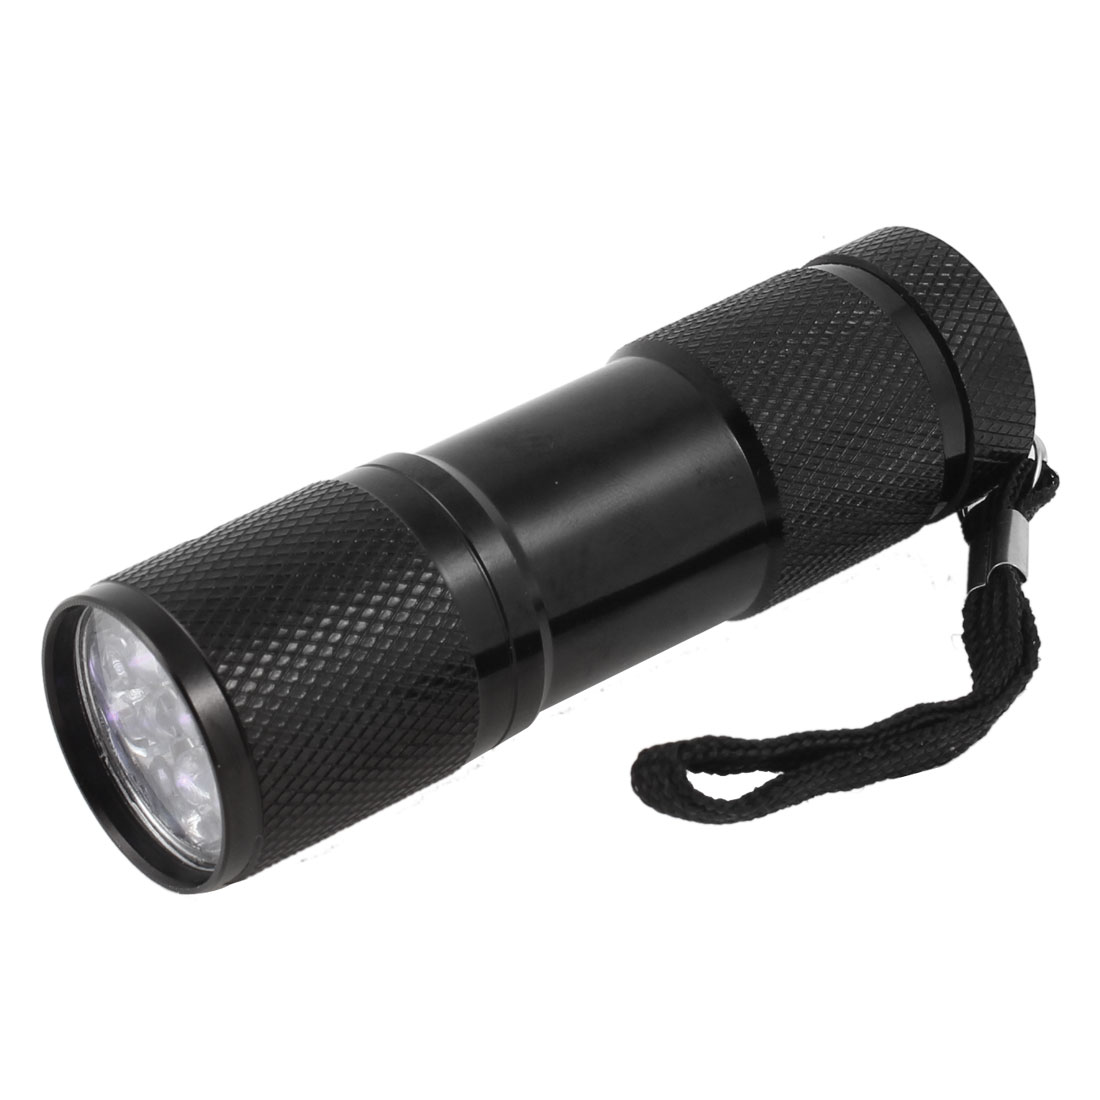 "Nonslip Handle Black Aluminum Alloy White LED Flashlight Mini Torch 3.5"" Length"